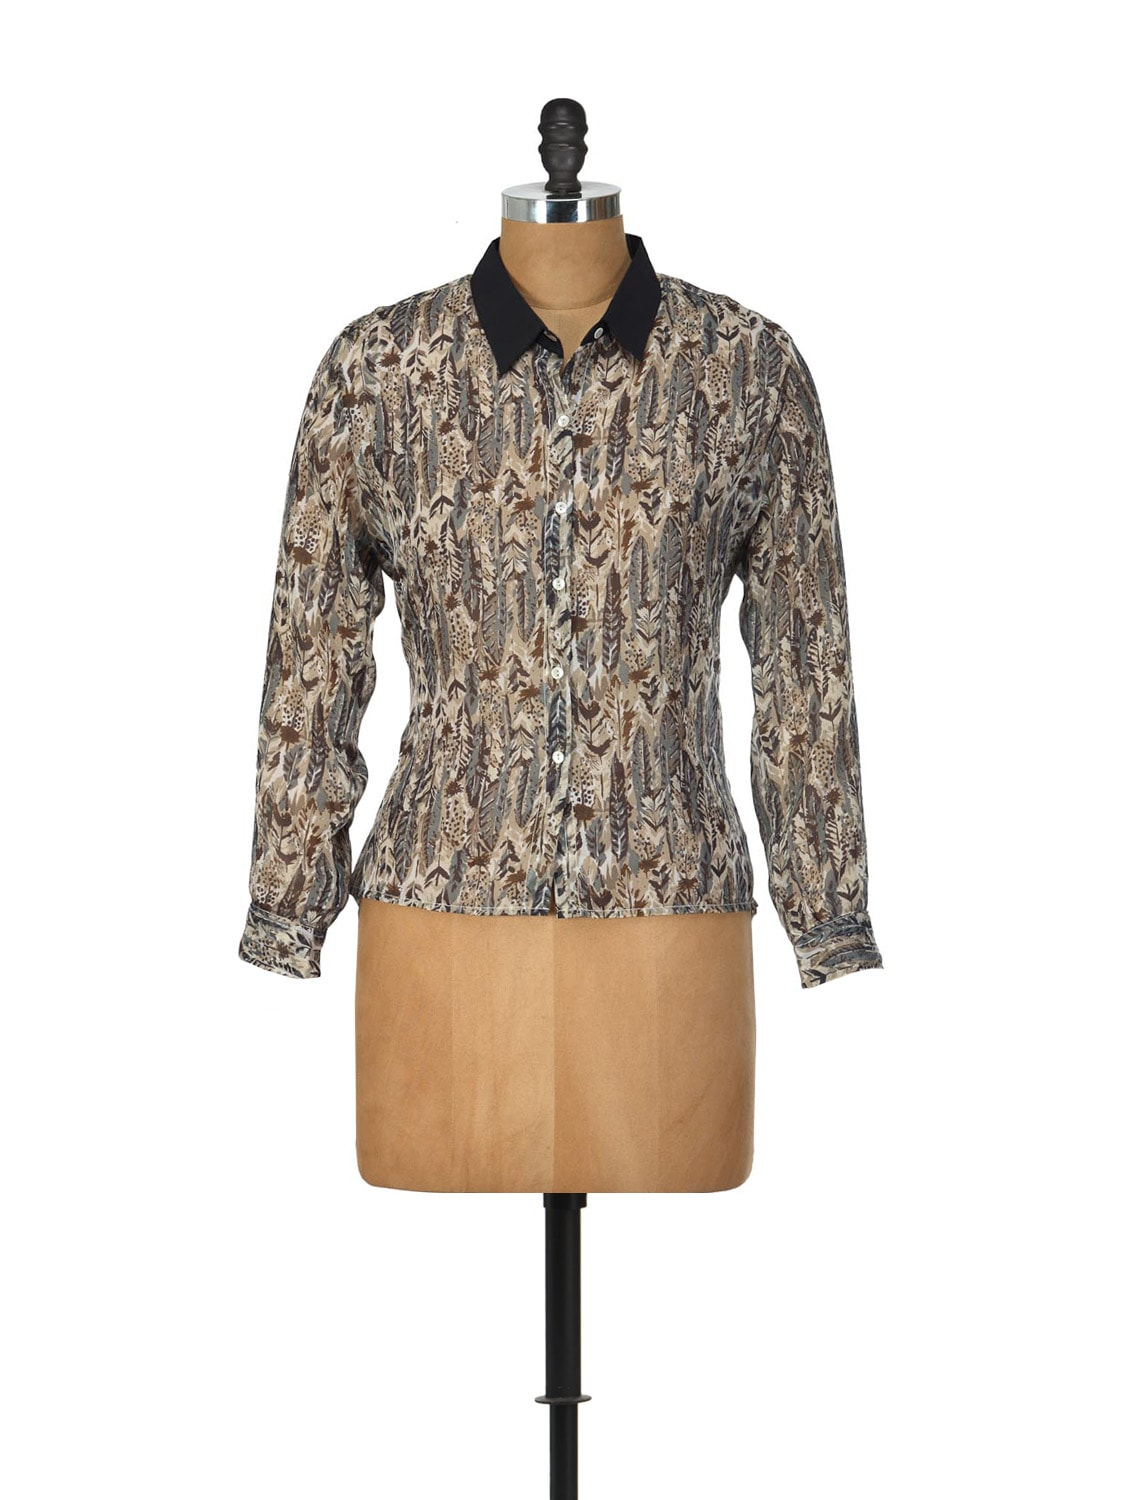 Feather Print Tribal Shirt Style Top - Yepme